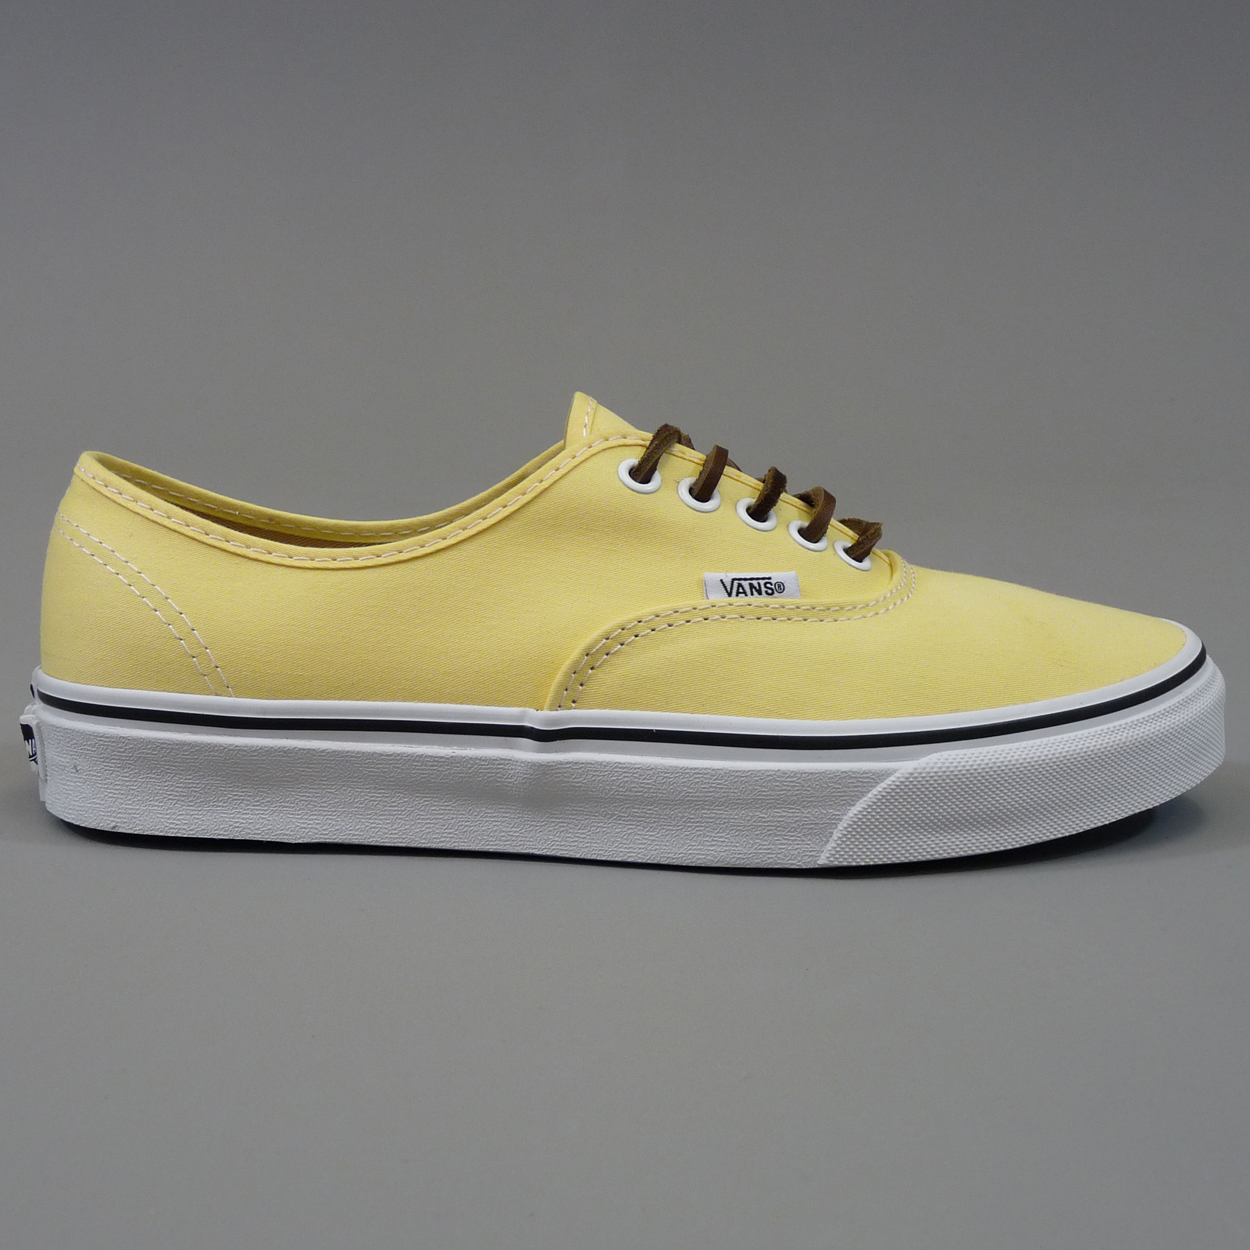 Vans Authentic California Shoes - Brushed Twill Pale Banana £45.00 5e4091a28